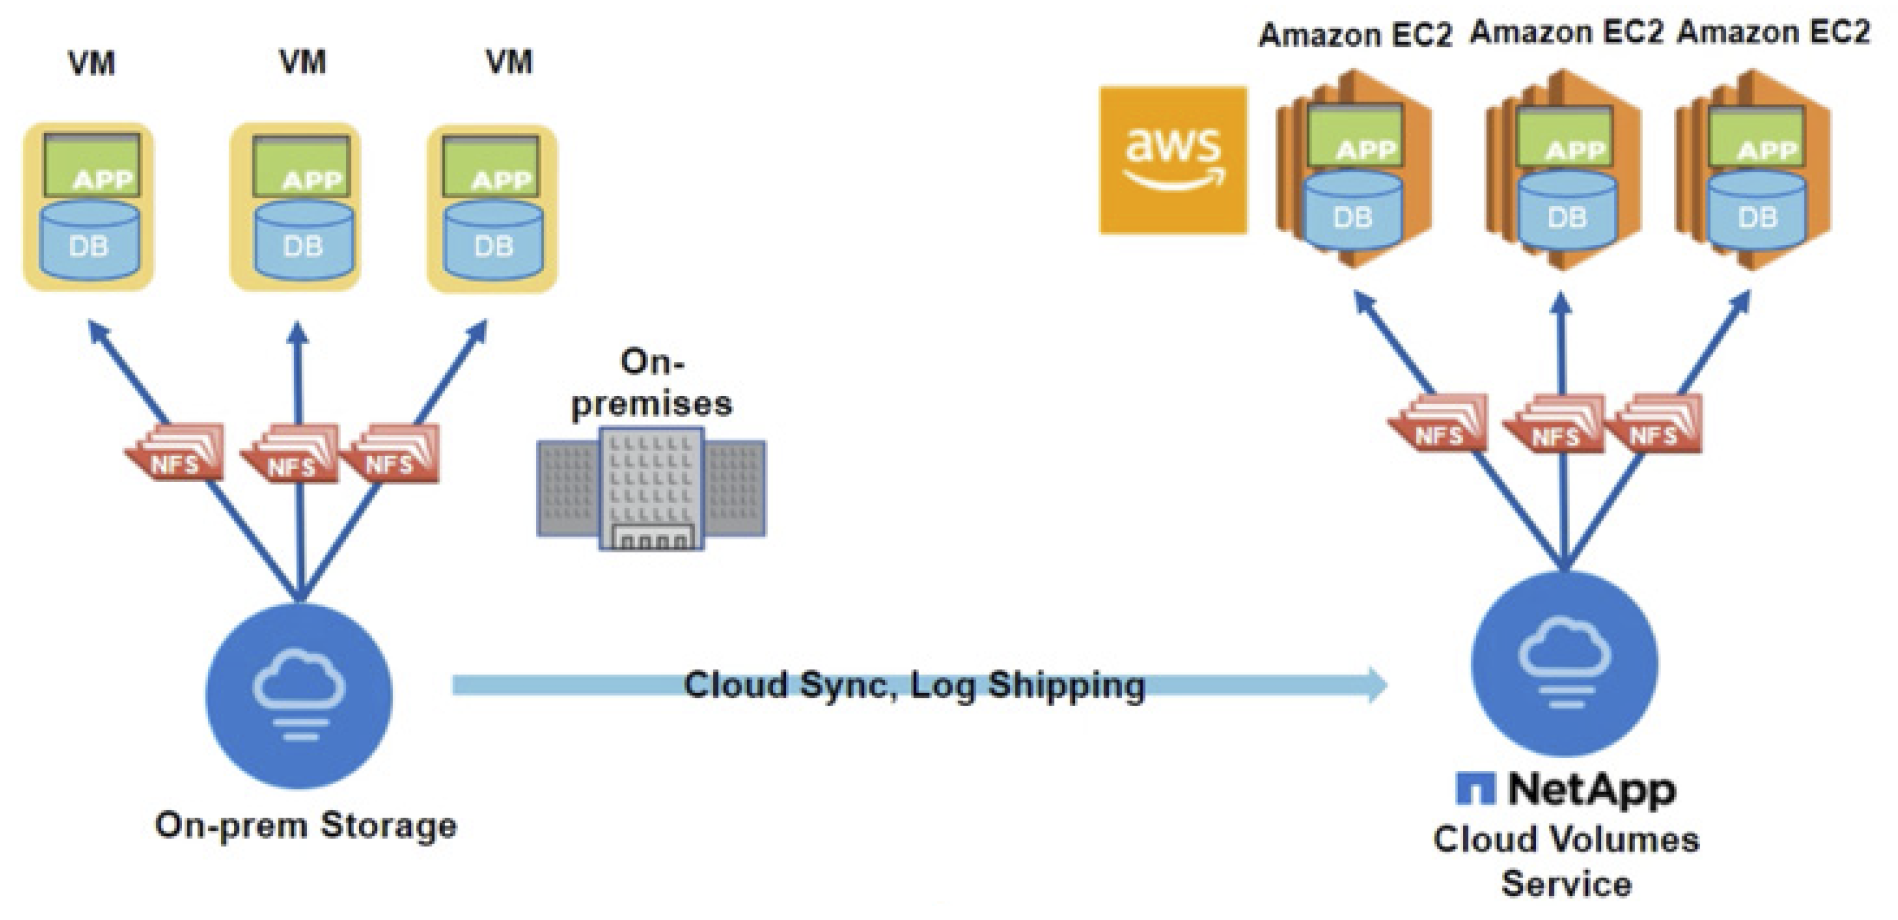 Cloud Volumes Service for AWS: Migrating Data